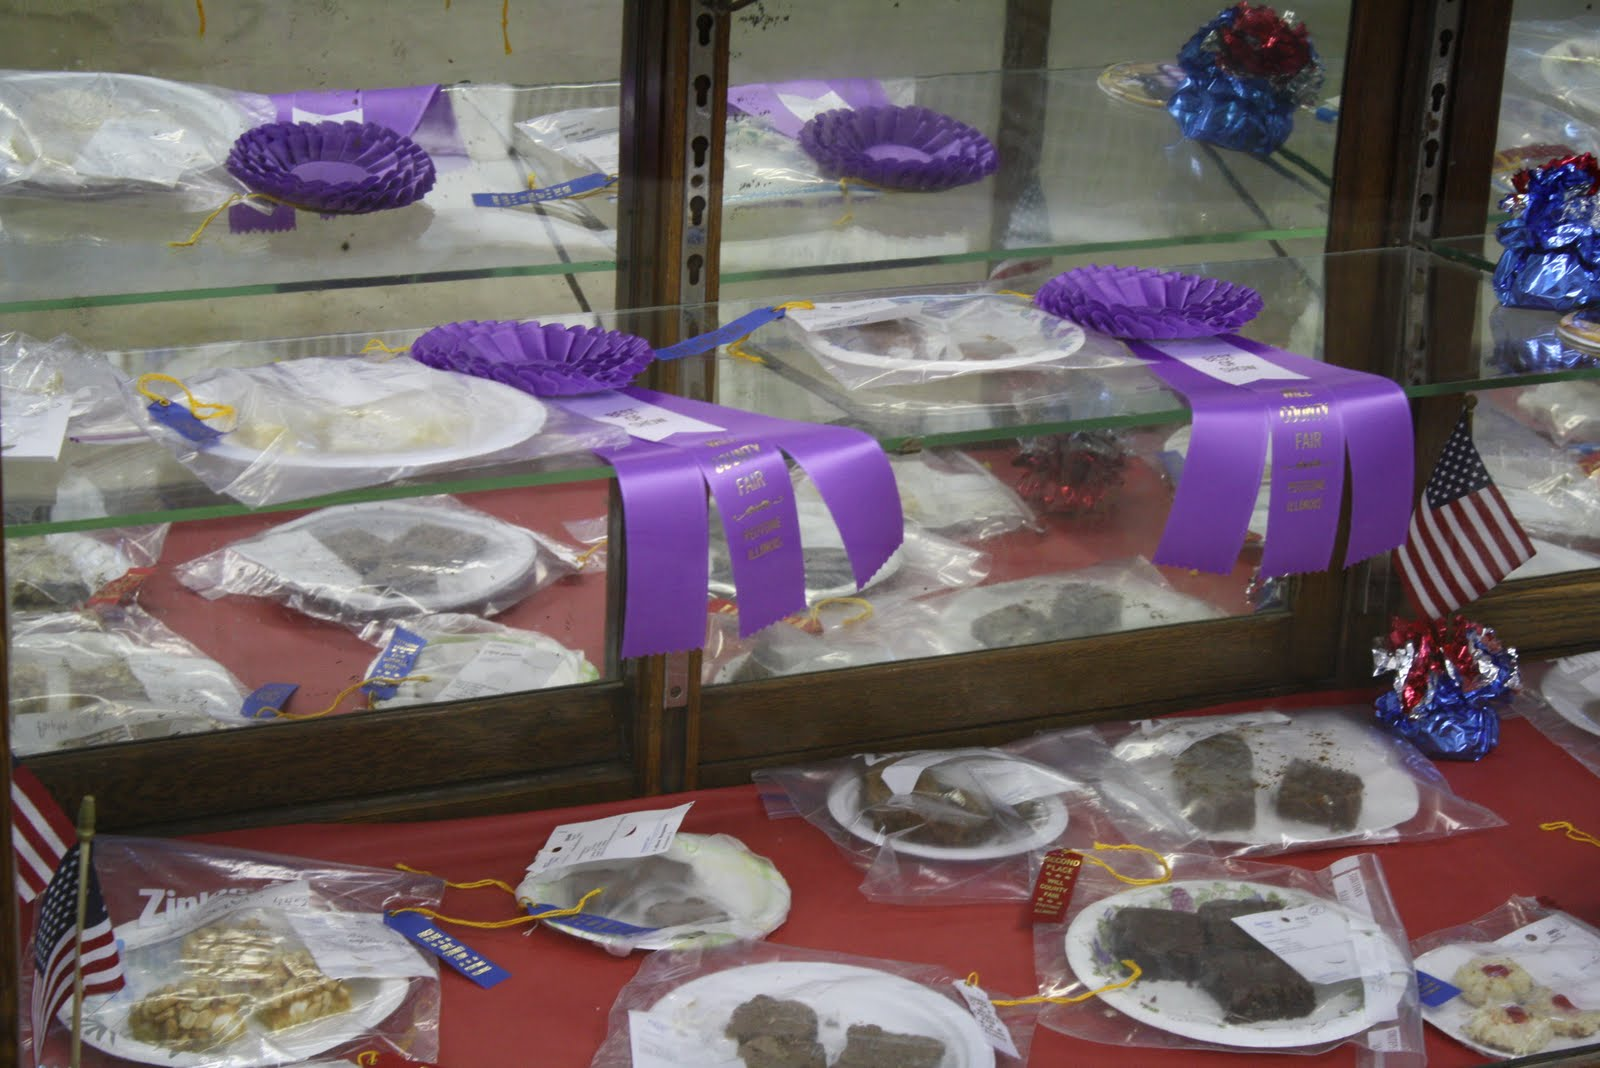 Illinois will county peotone - Award Winning Baked Goods At The Will County Fair